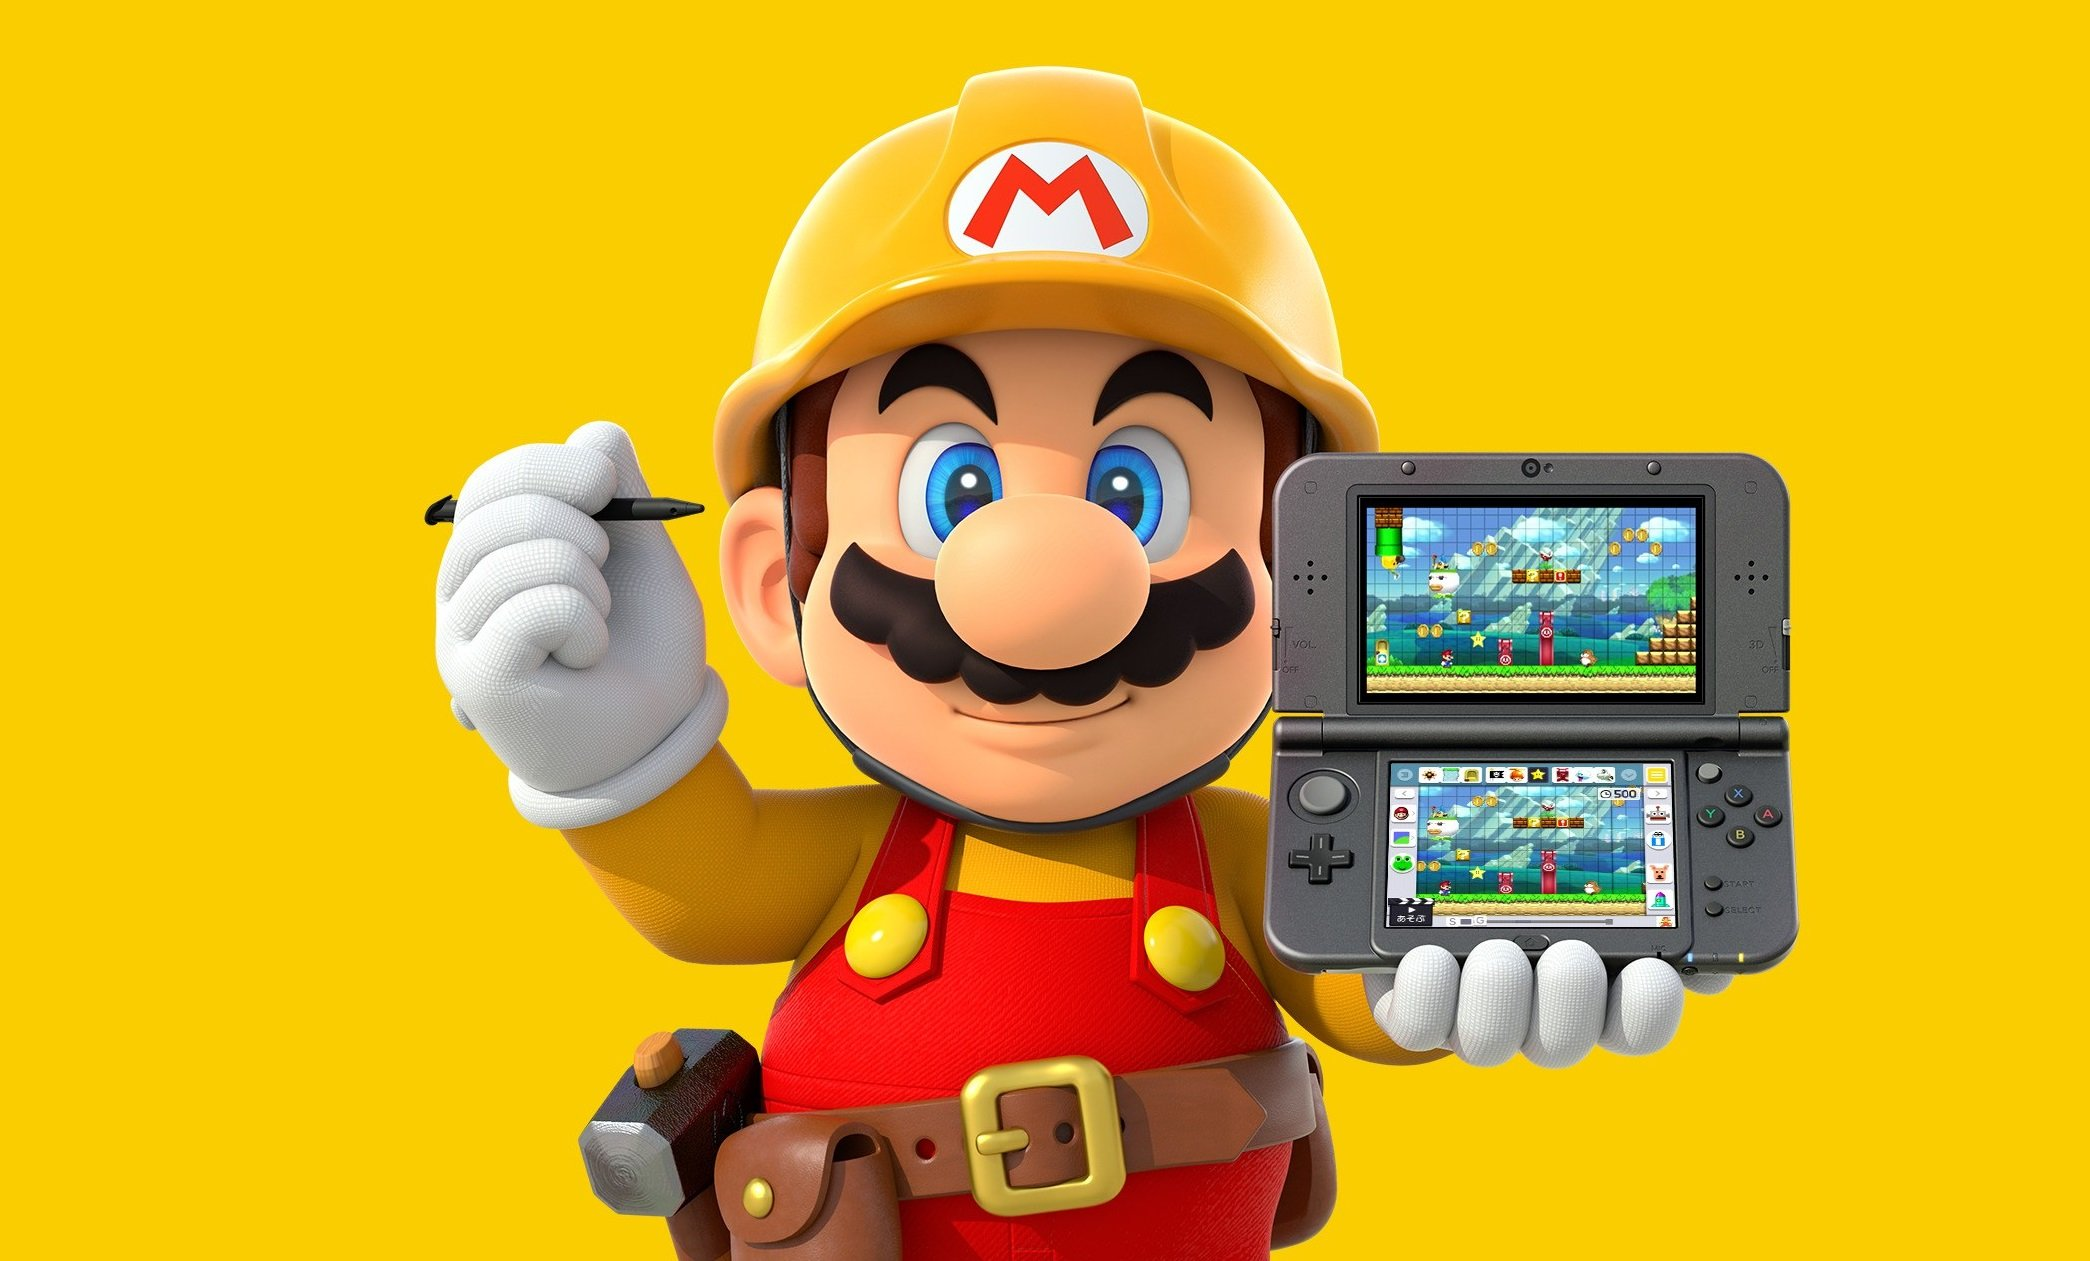 While Super Mario Maker 2 is exclusive to the Nintendo Switch, the original Super Mario Maker is available for Wii U and 3DS.